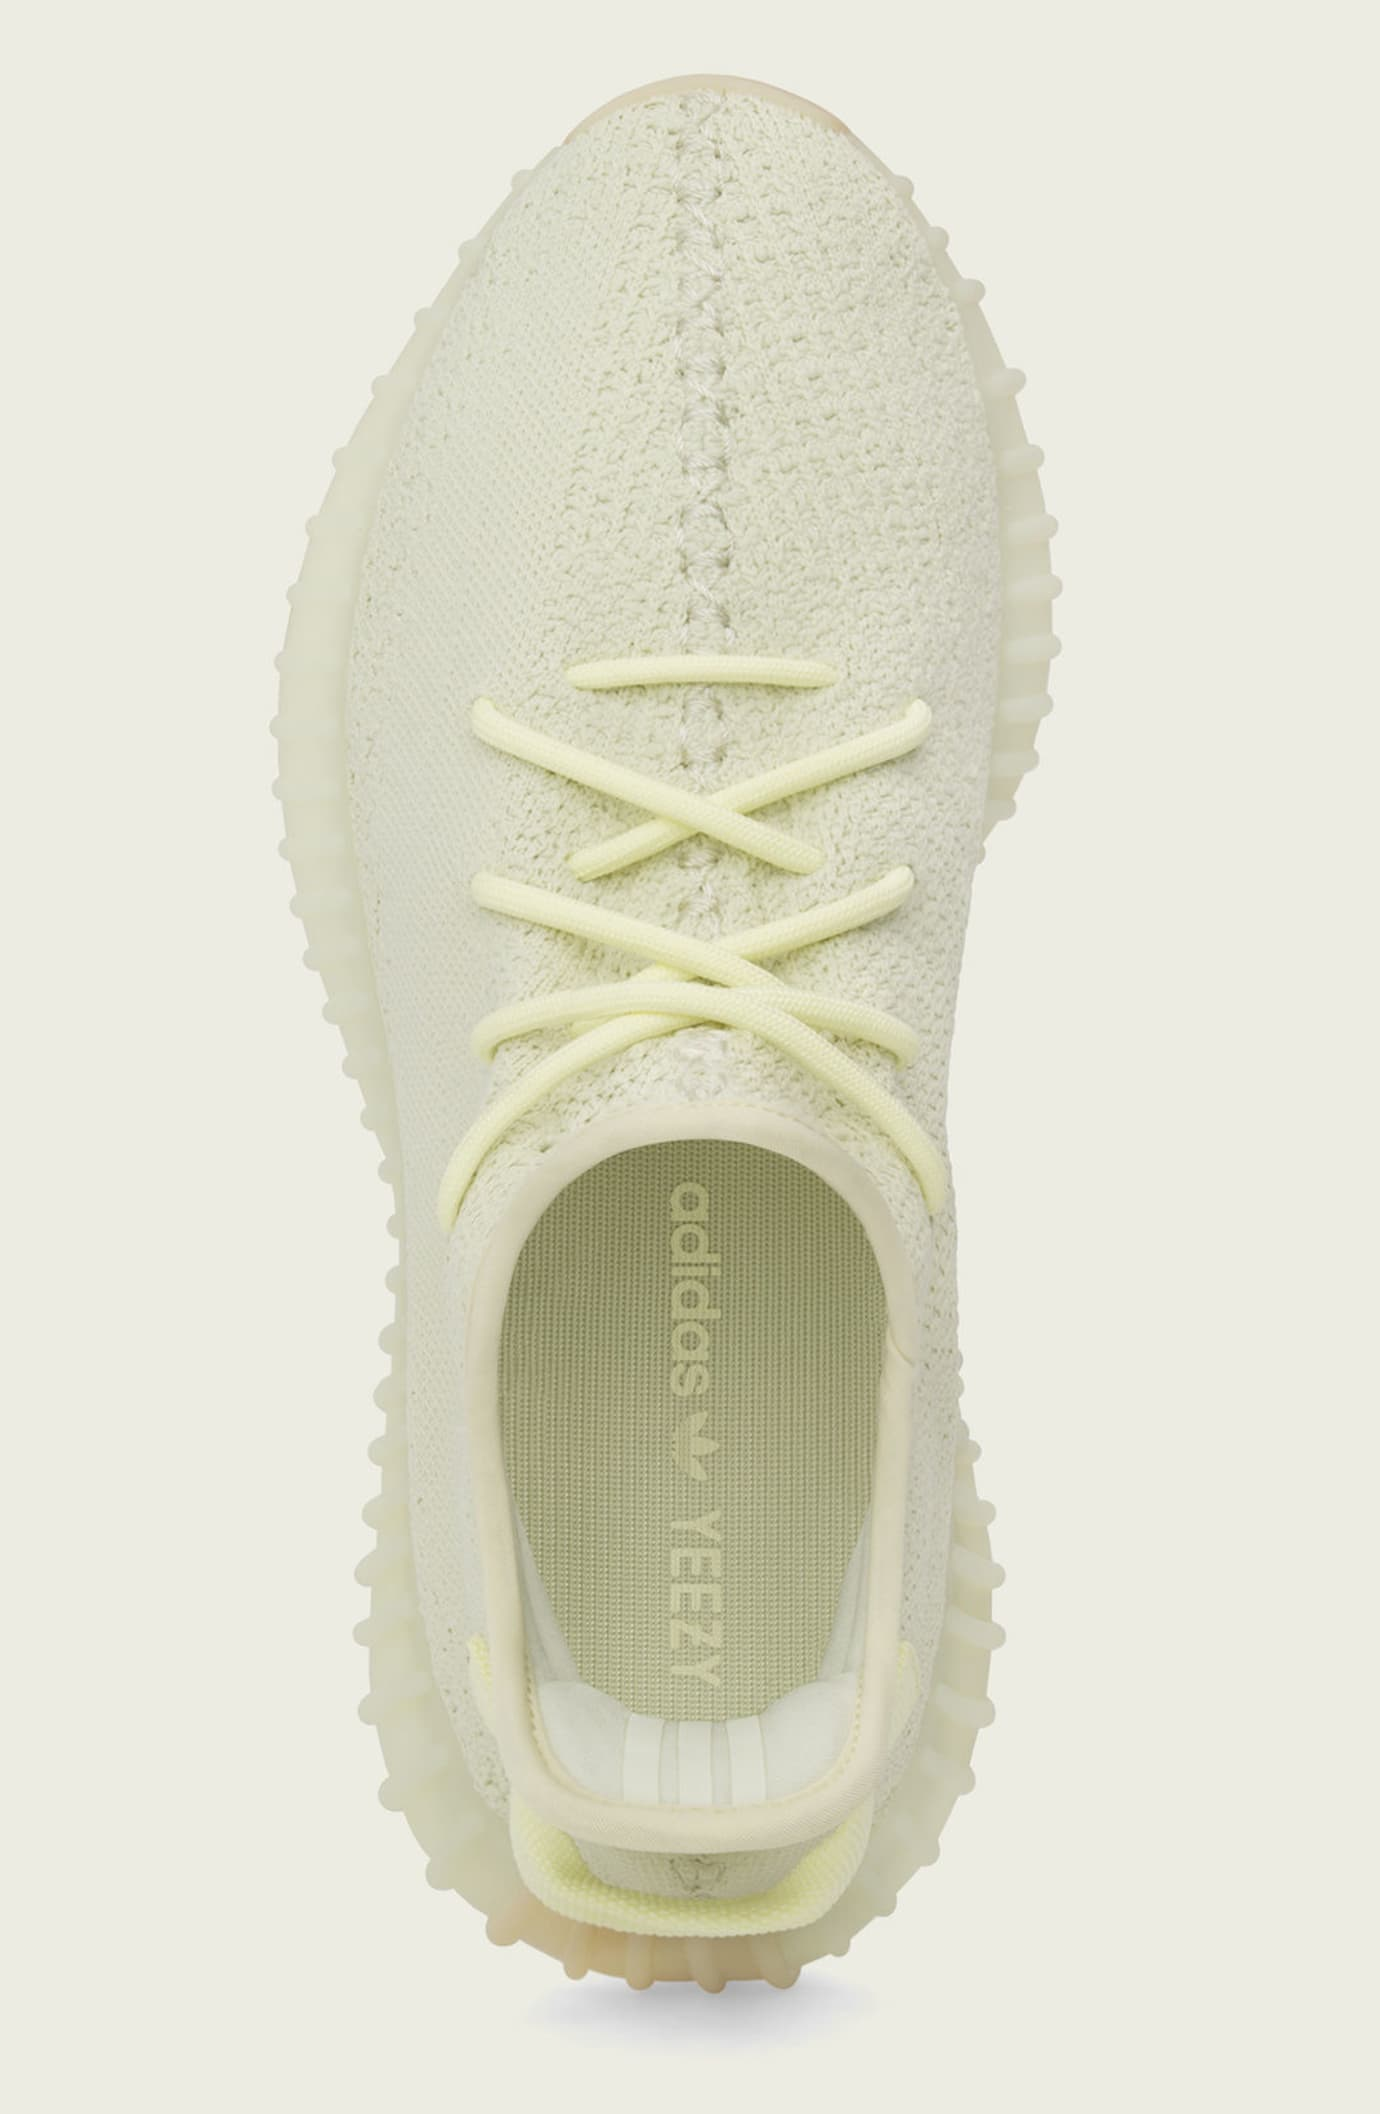 new style 1d99a 717ef Adidas Yeezy Boost 350 V2 'Butter' F36980 January 2018 ...